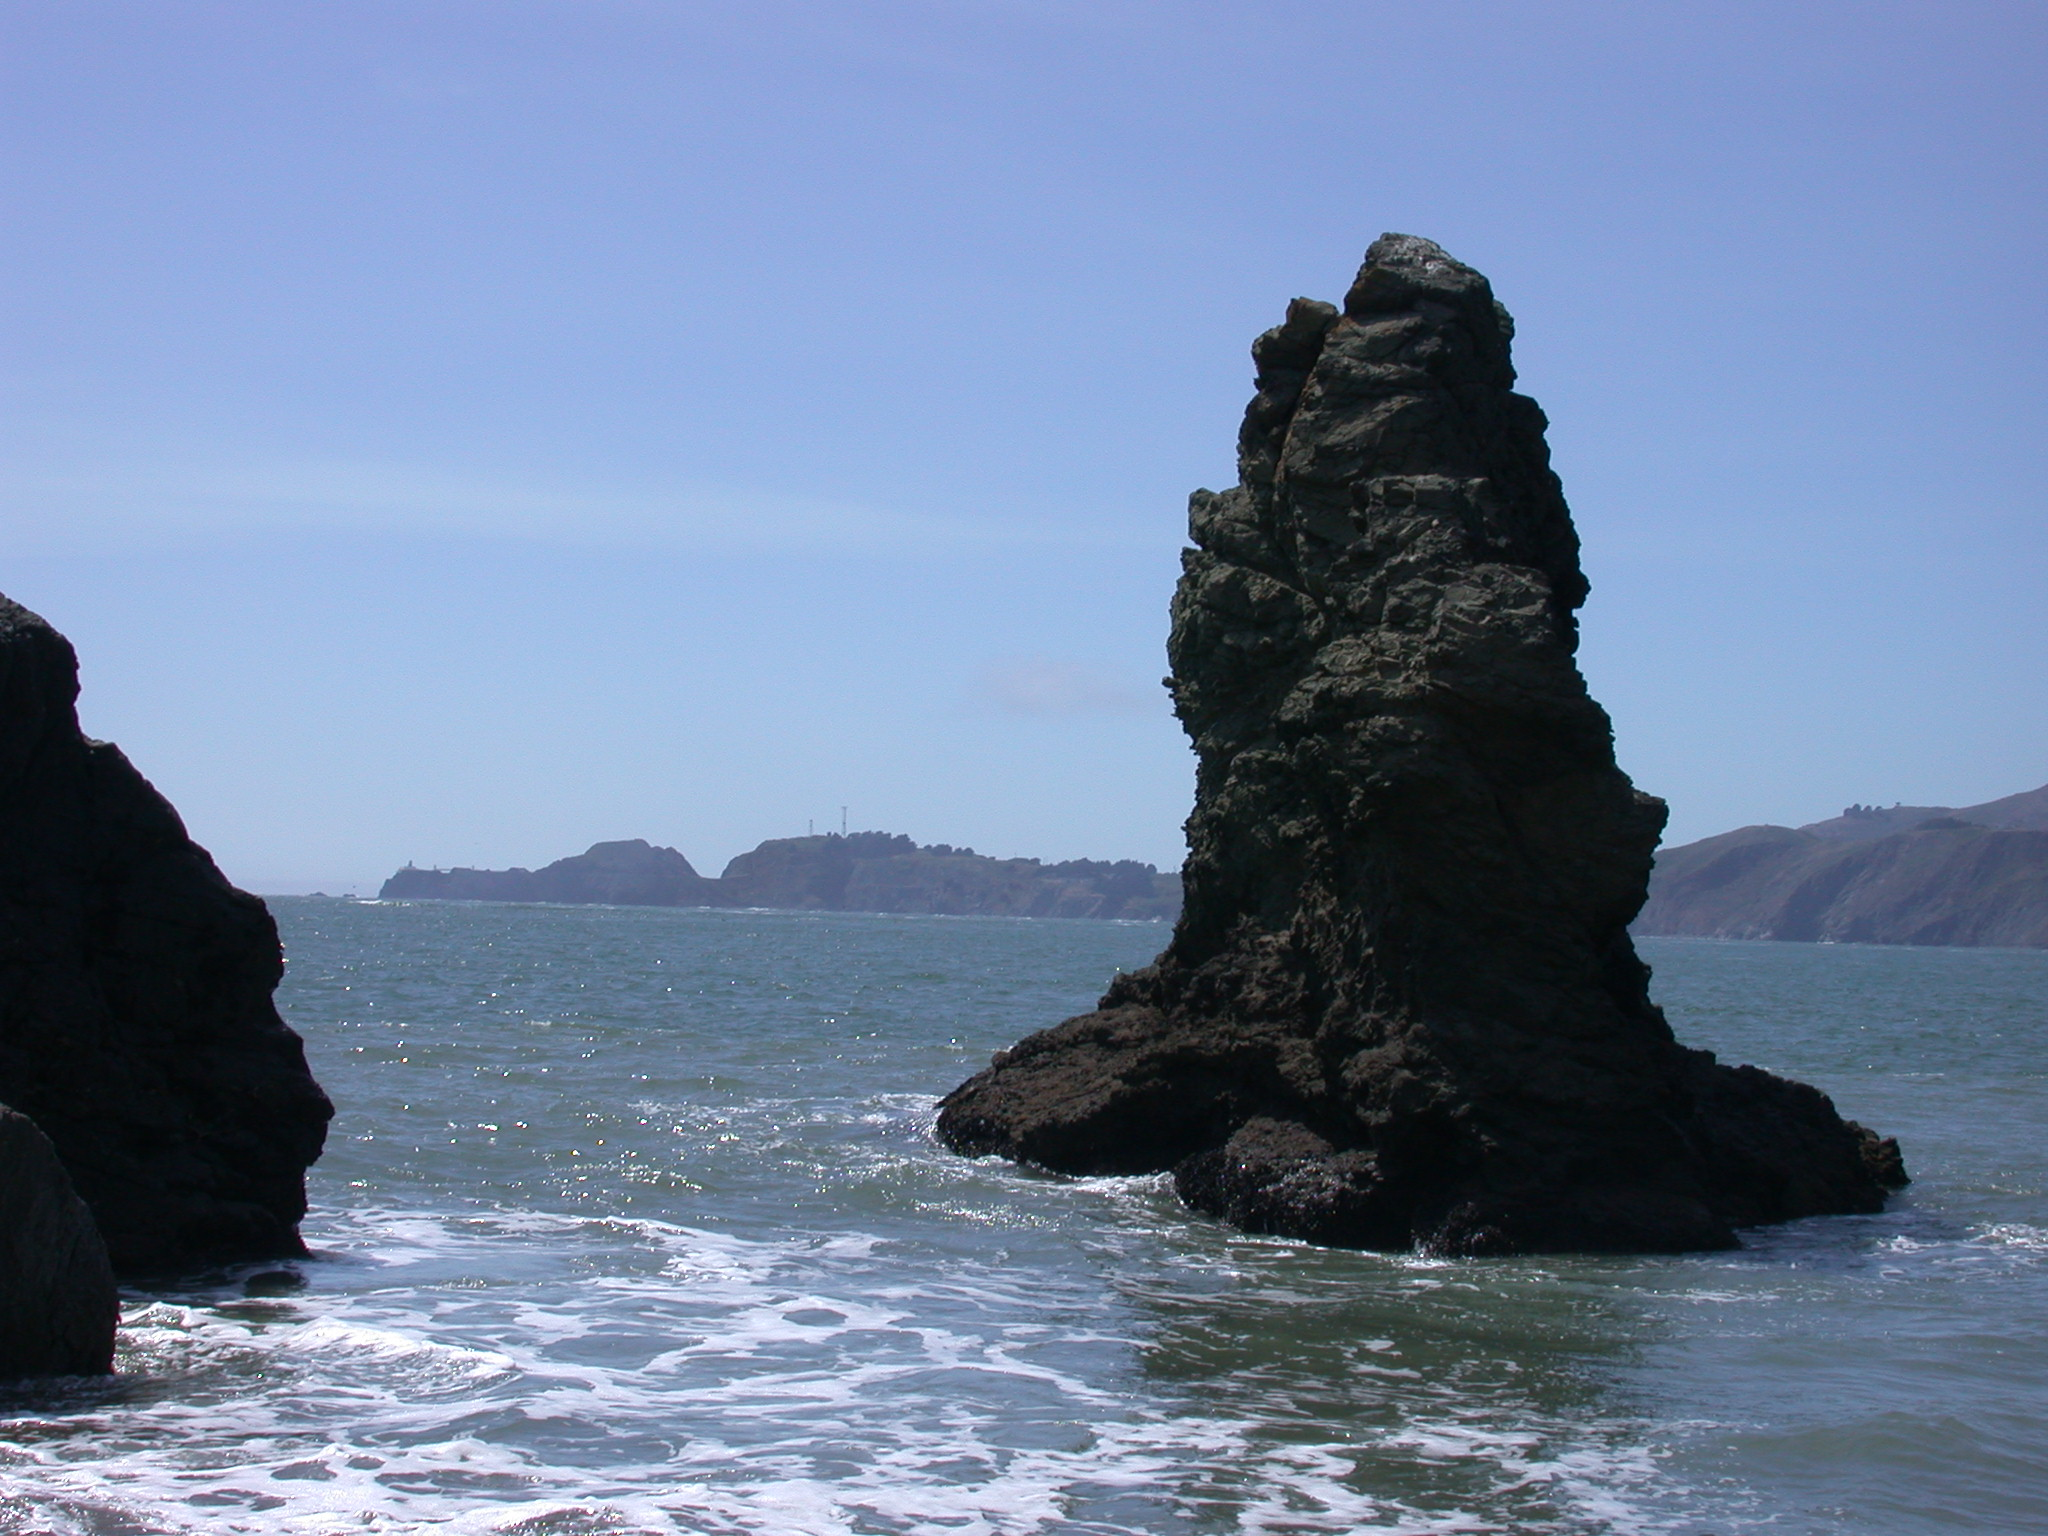 Giant Rock Protruding From Pacific Ocean Near Golden Gate Bridge